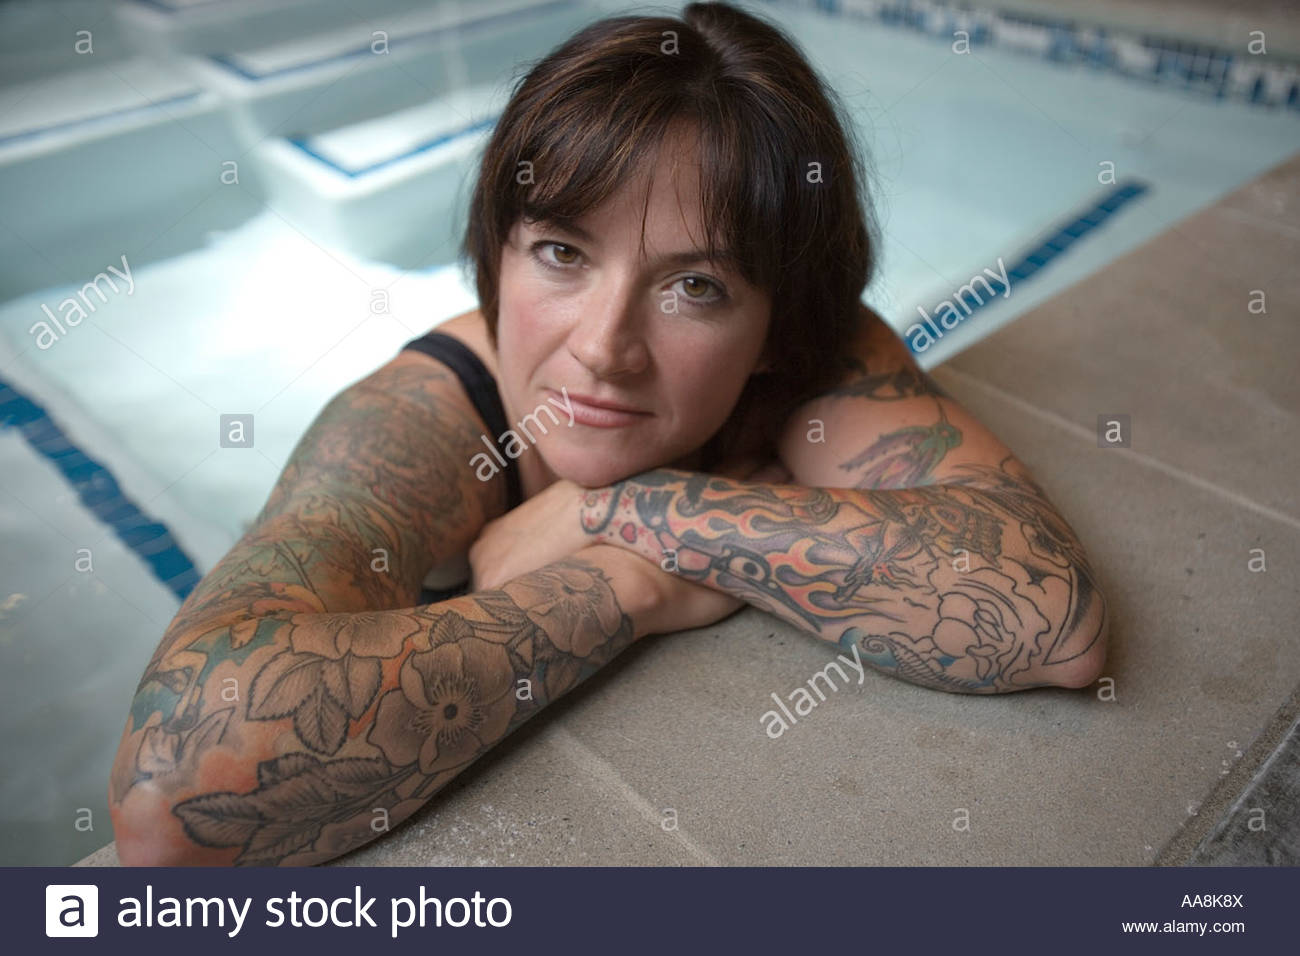 Woman with tattooed arms in hot tub Stock Photo  12550489 - Alamy a6b89fbd4fe2